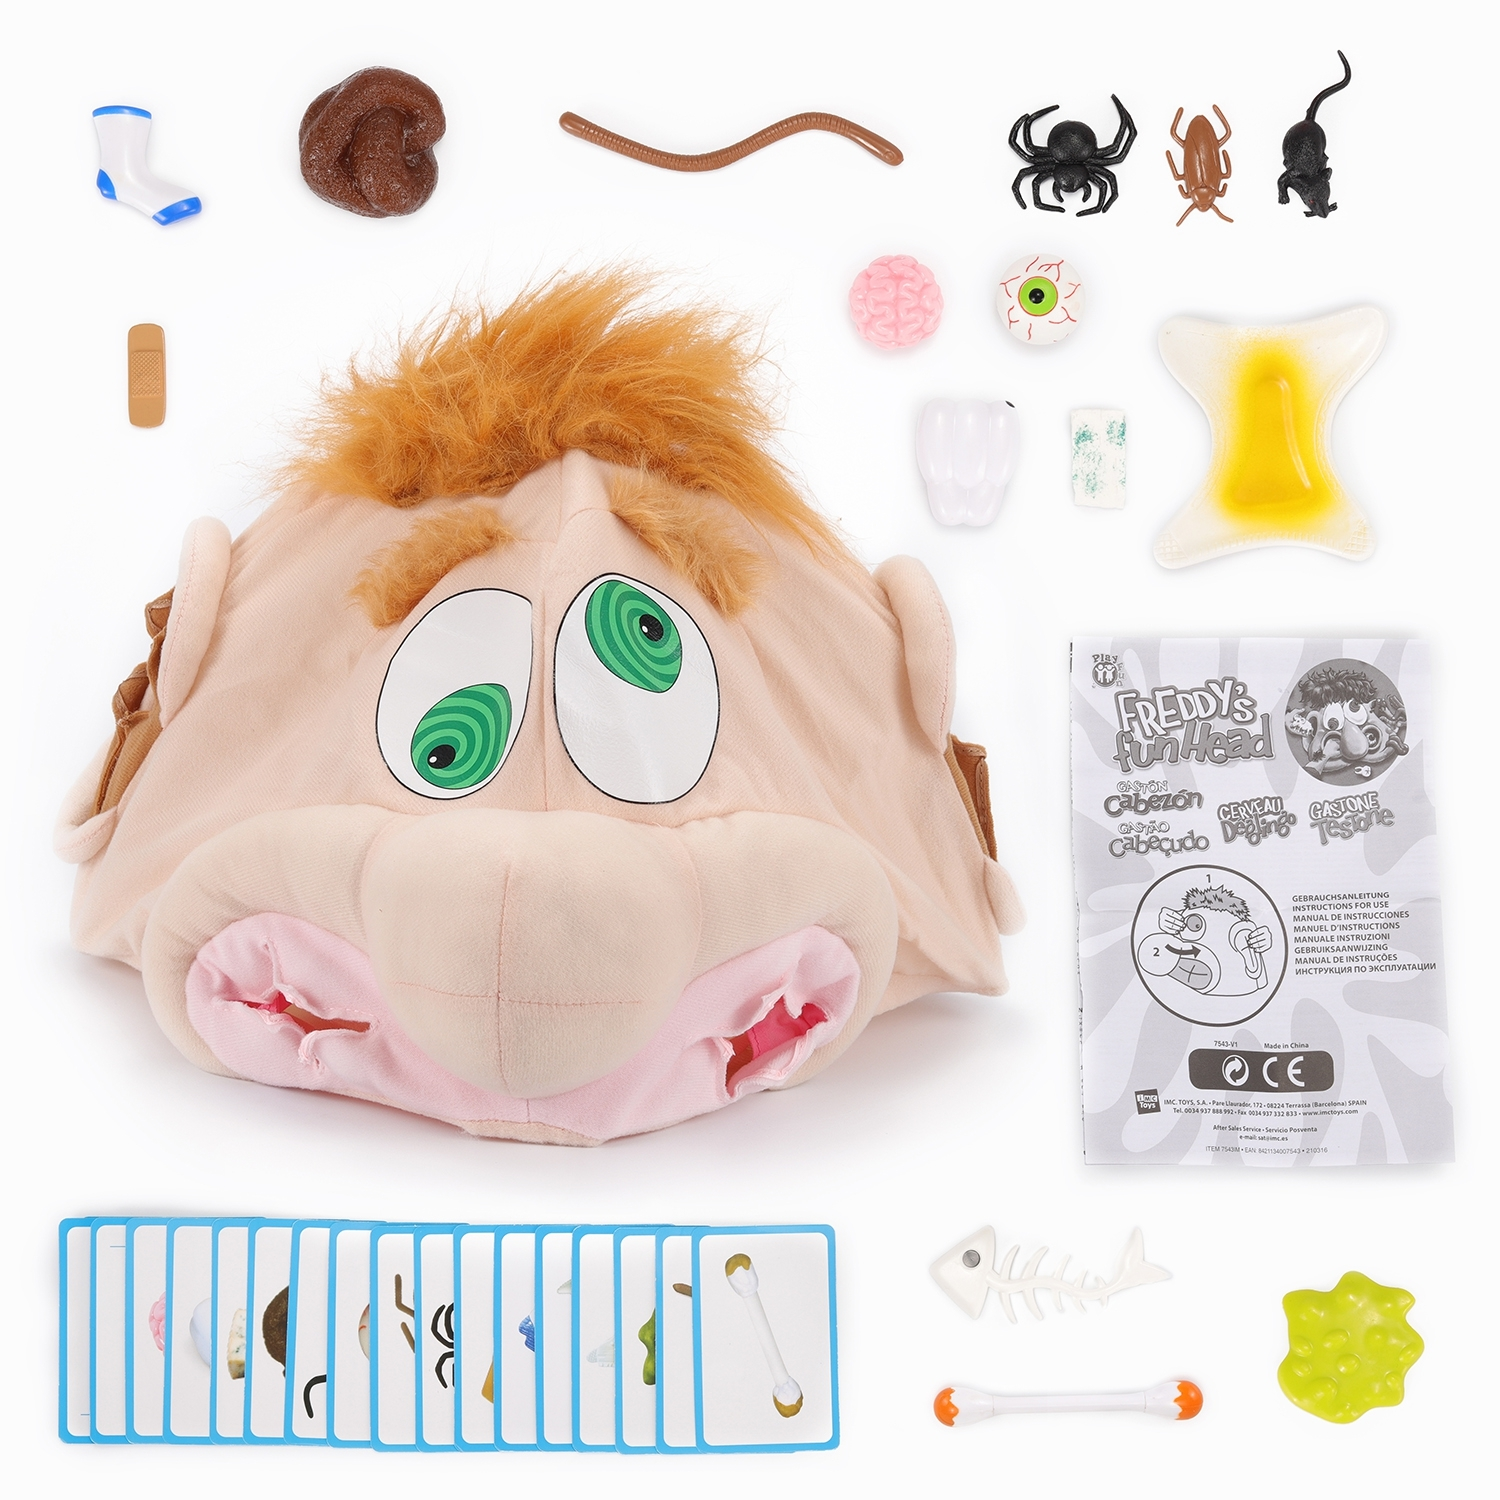 Развивающие и обучающие IMC toys Freddy's fun Head new man silicone vagina real aircraft cup male masturbator small artificial pocket pussy penis pump toys adult fun sex products for men